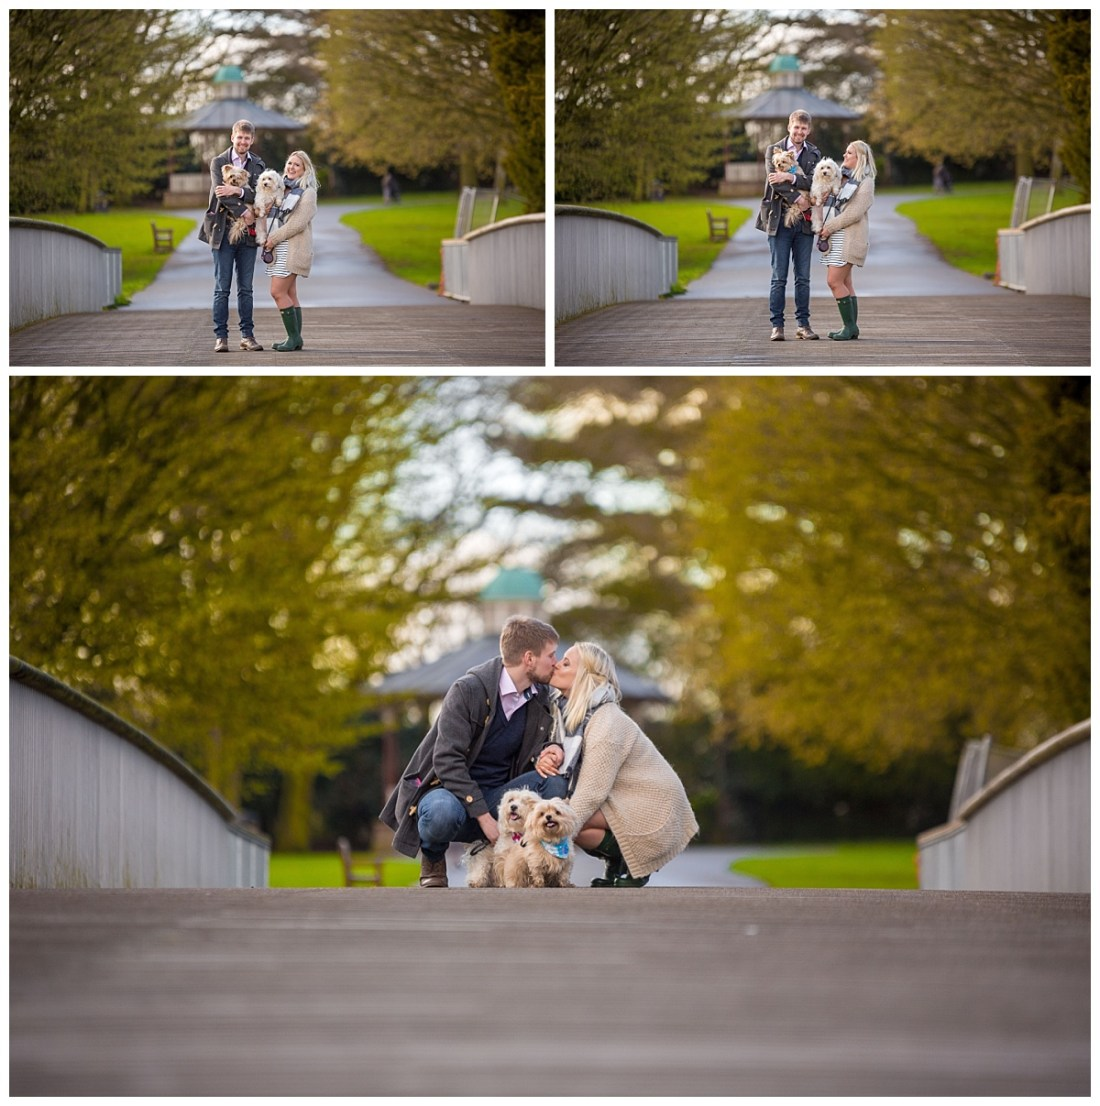 Engagement Shoot in a Park